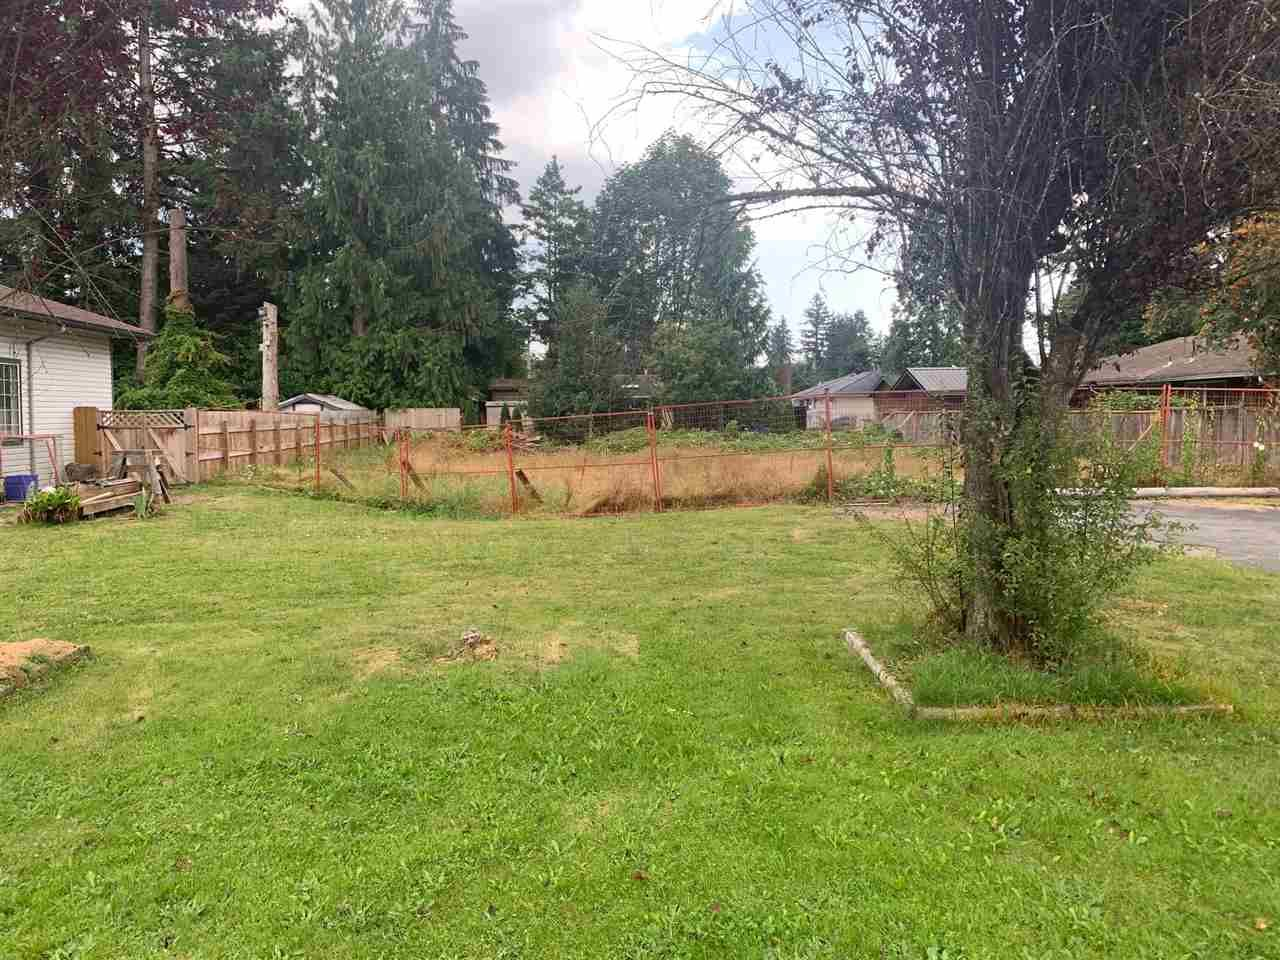 Main Photo: 21434 122 Avenue in Maple Ridge: West Central Land for sale : MLS®# R2487385